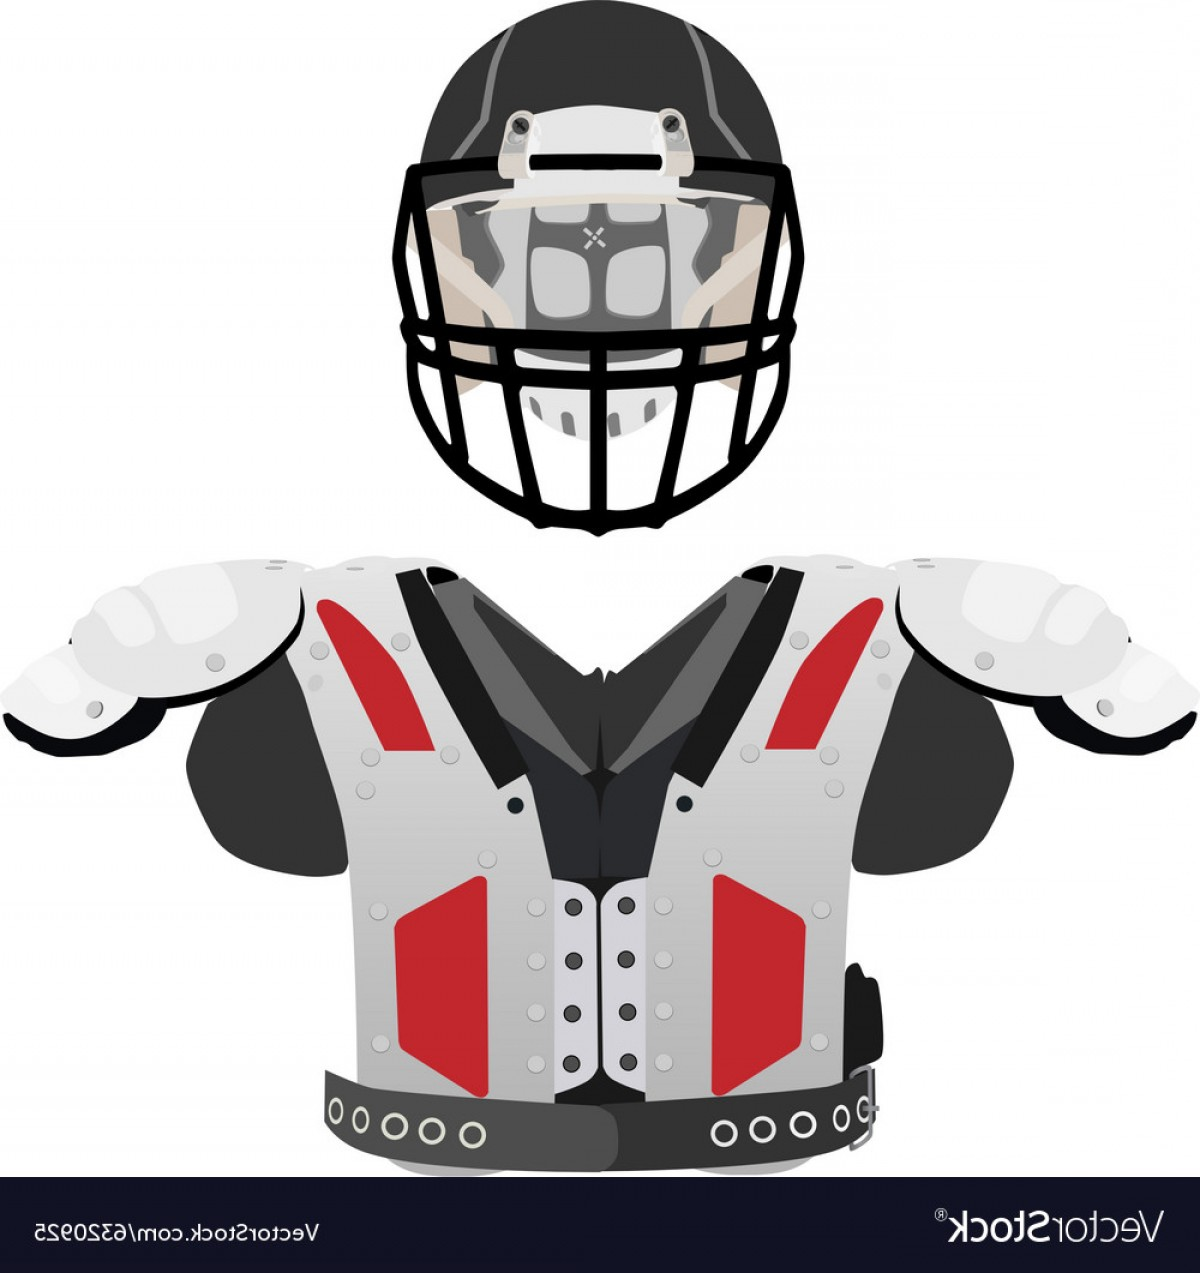 High Res Vector American Football: American Football Helmet And Armour Vector